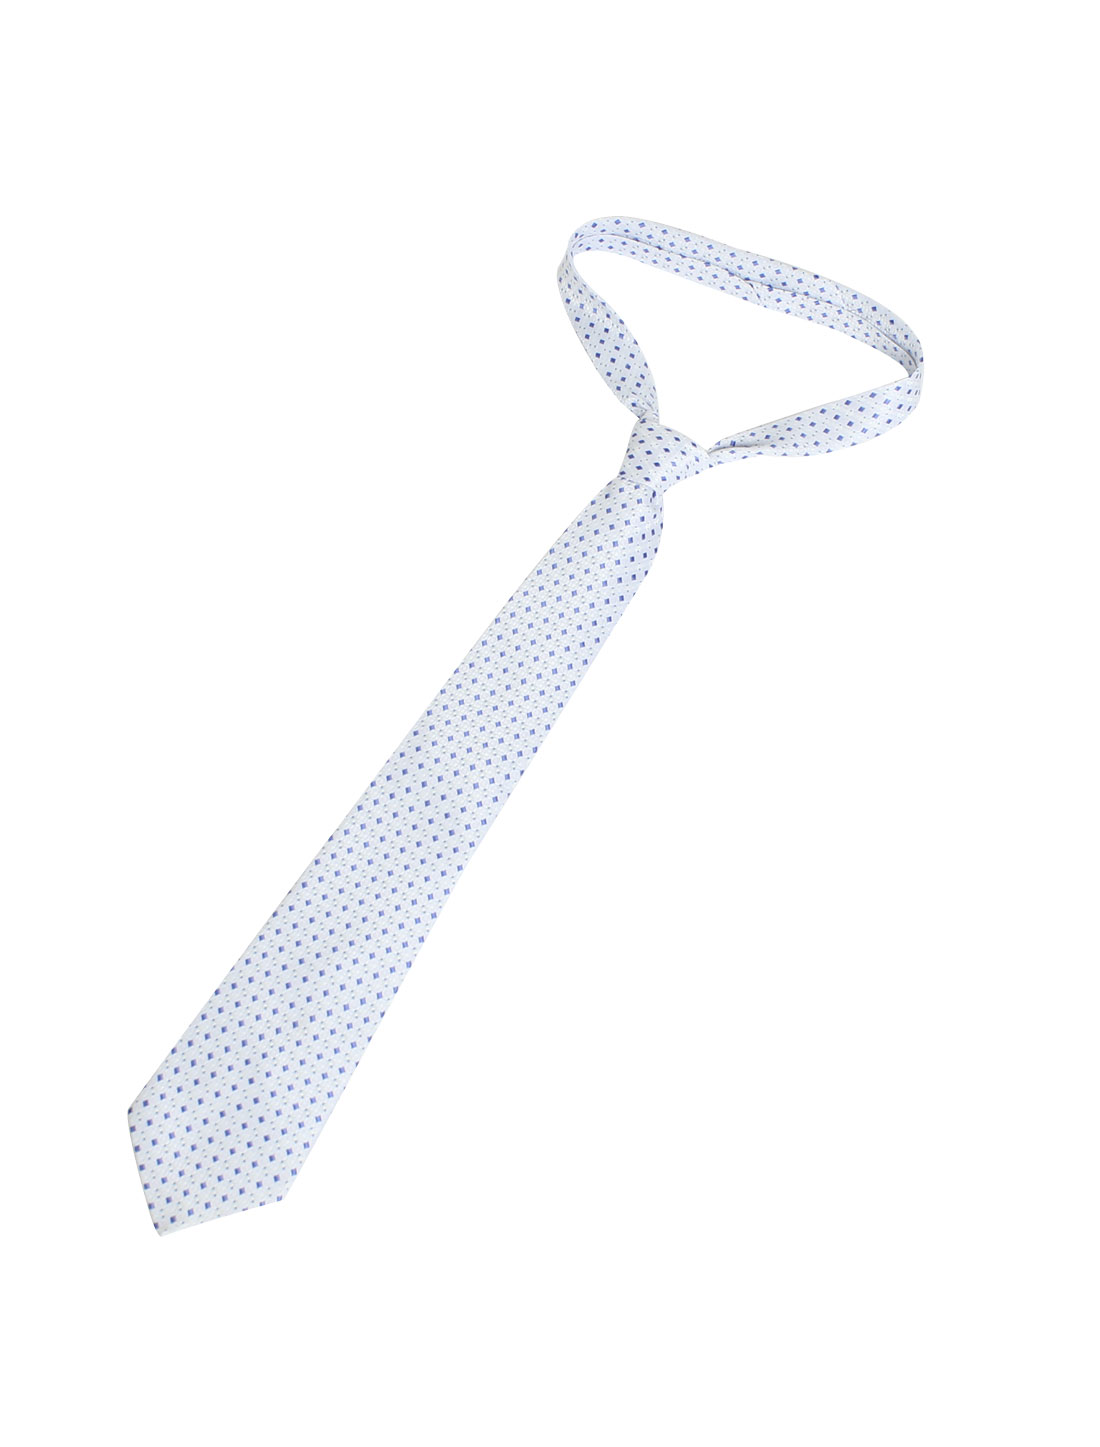 9.5cm Width Polyester Blue Dots Decor Self Tie Neckwear Necktie for Men